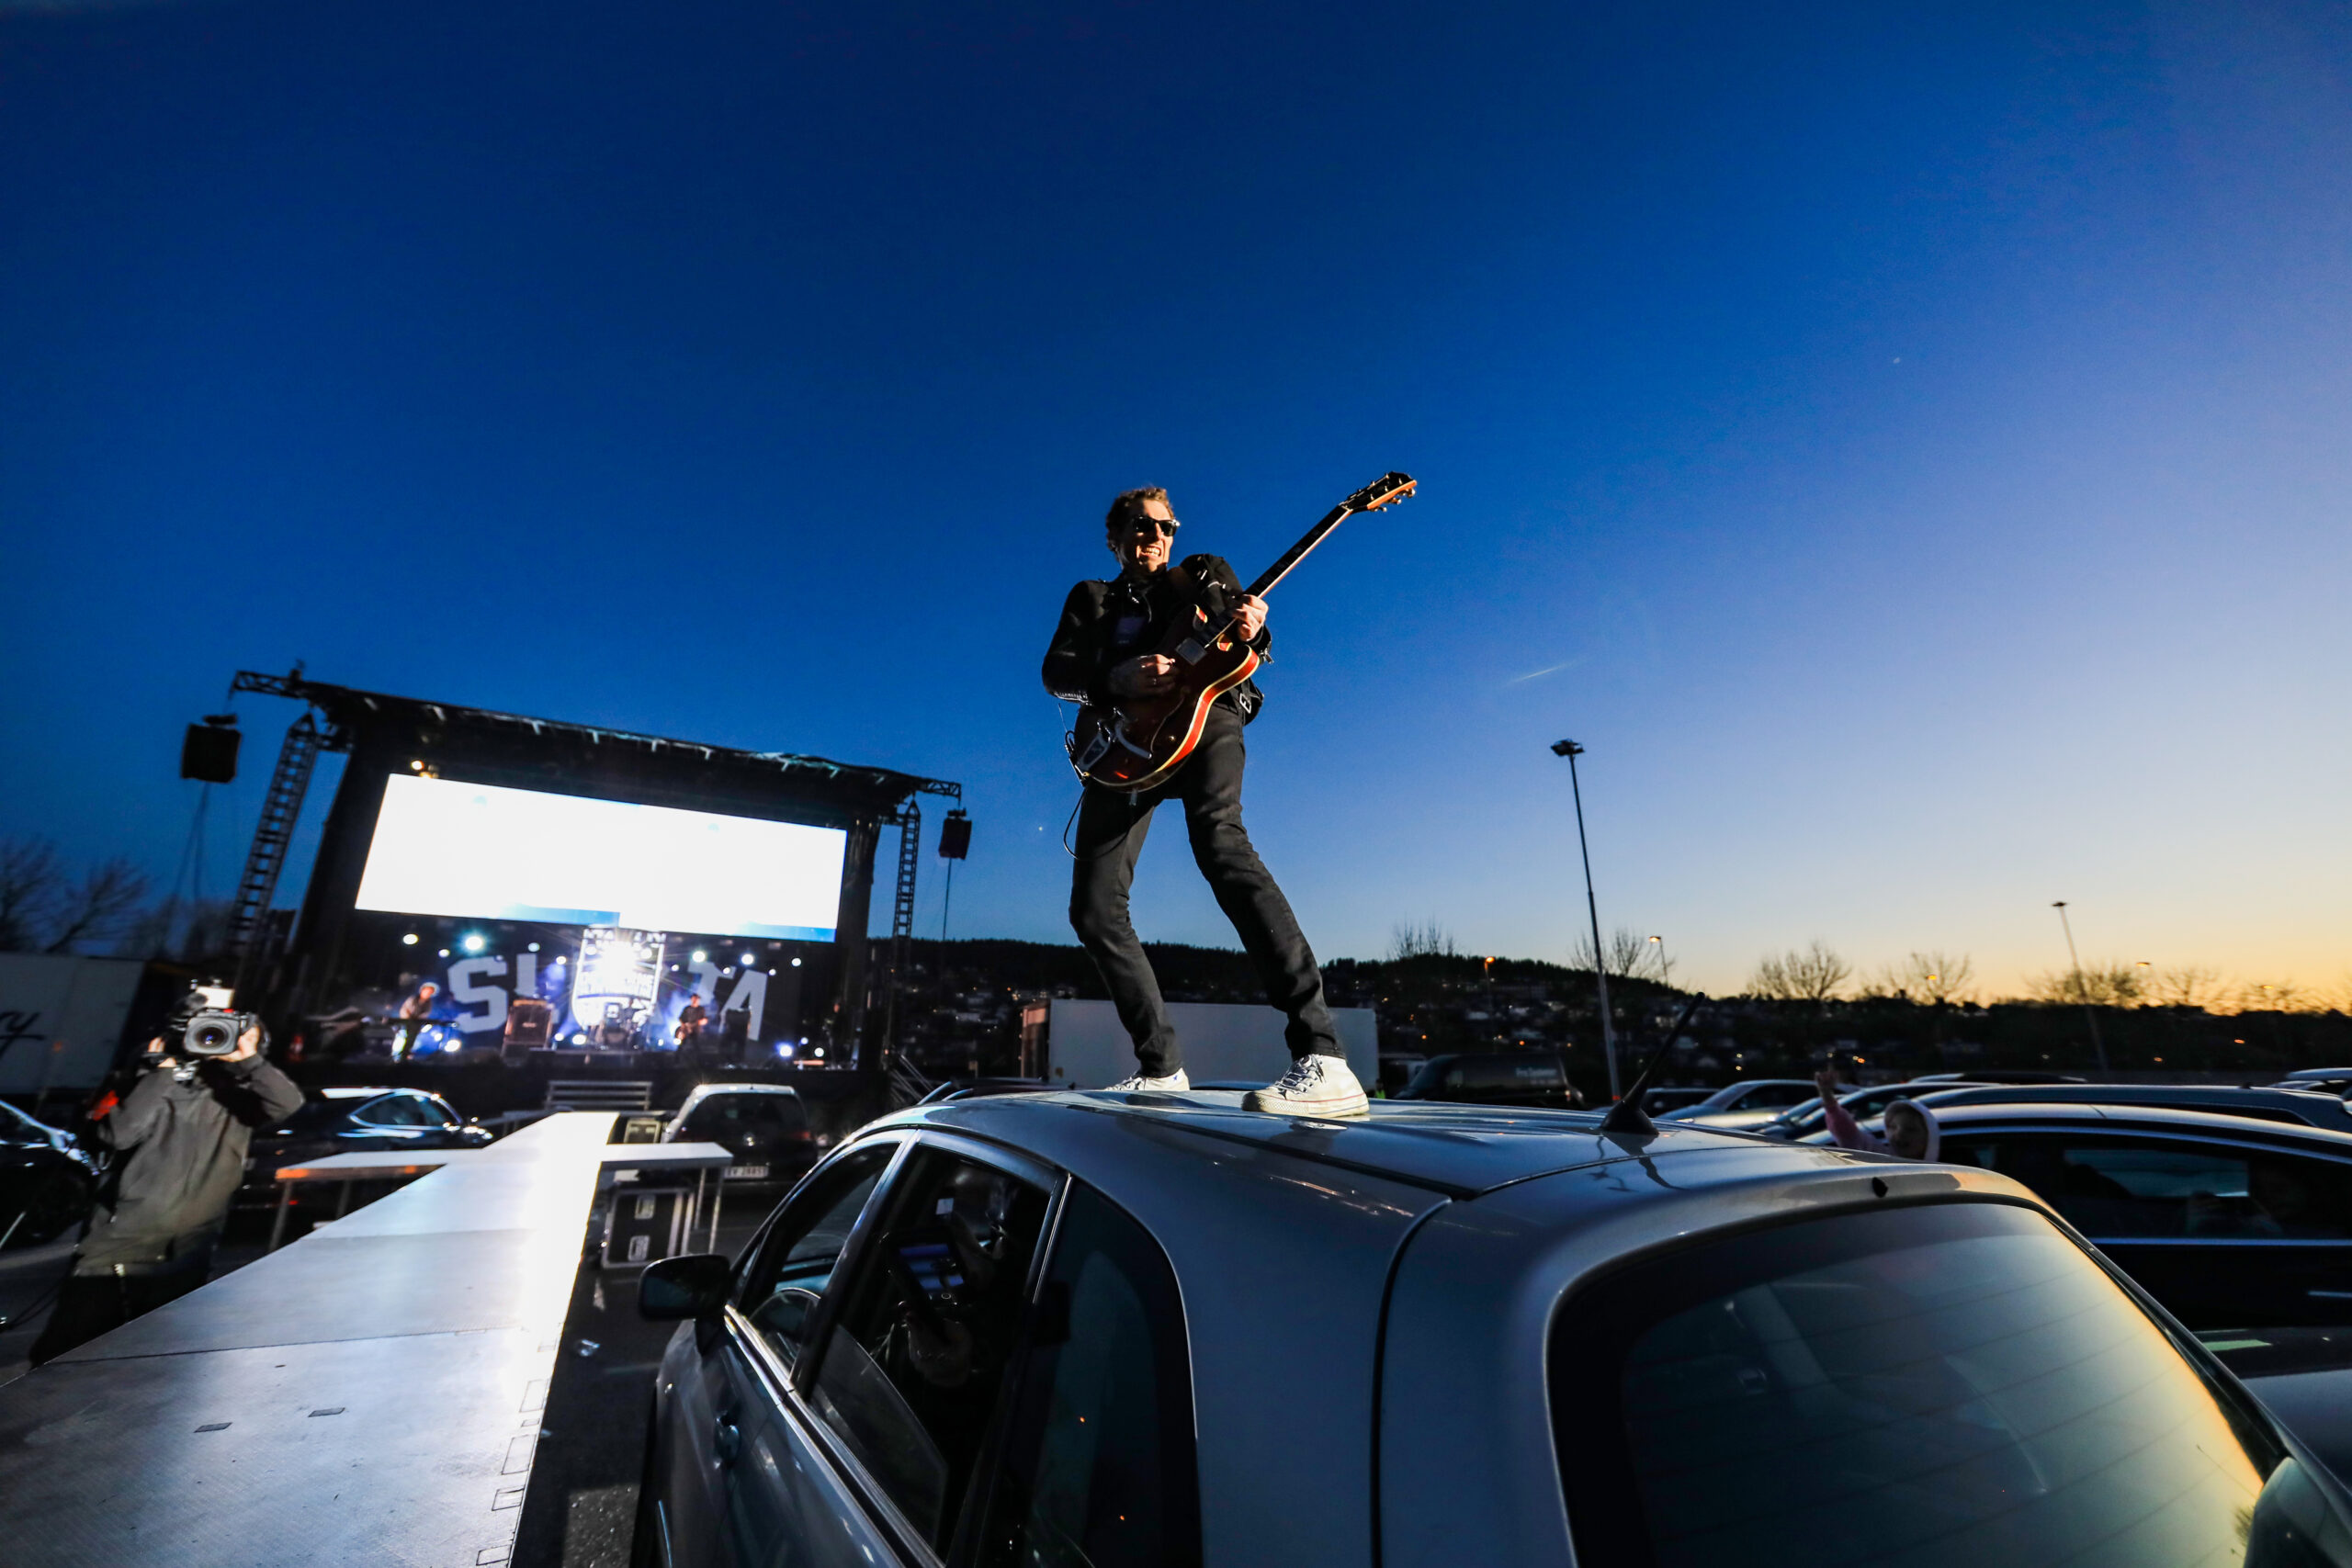 A guitarist on the roof of a car